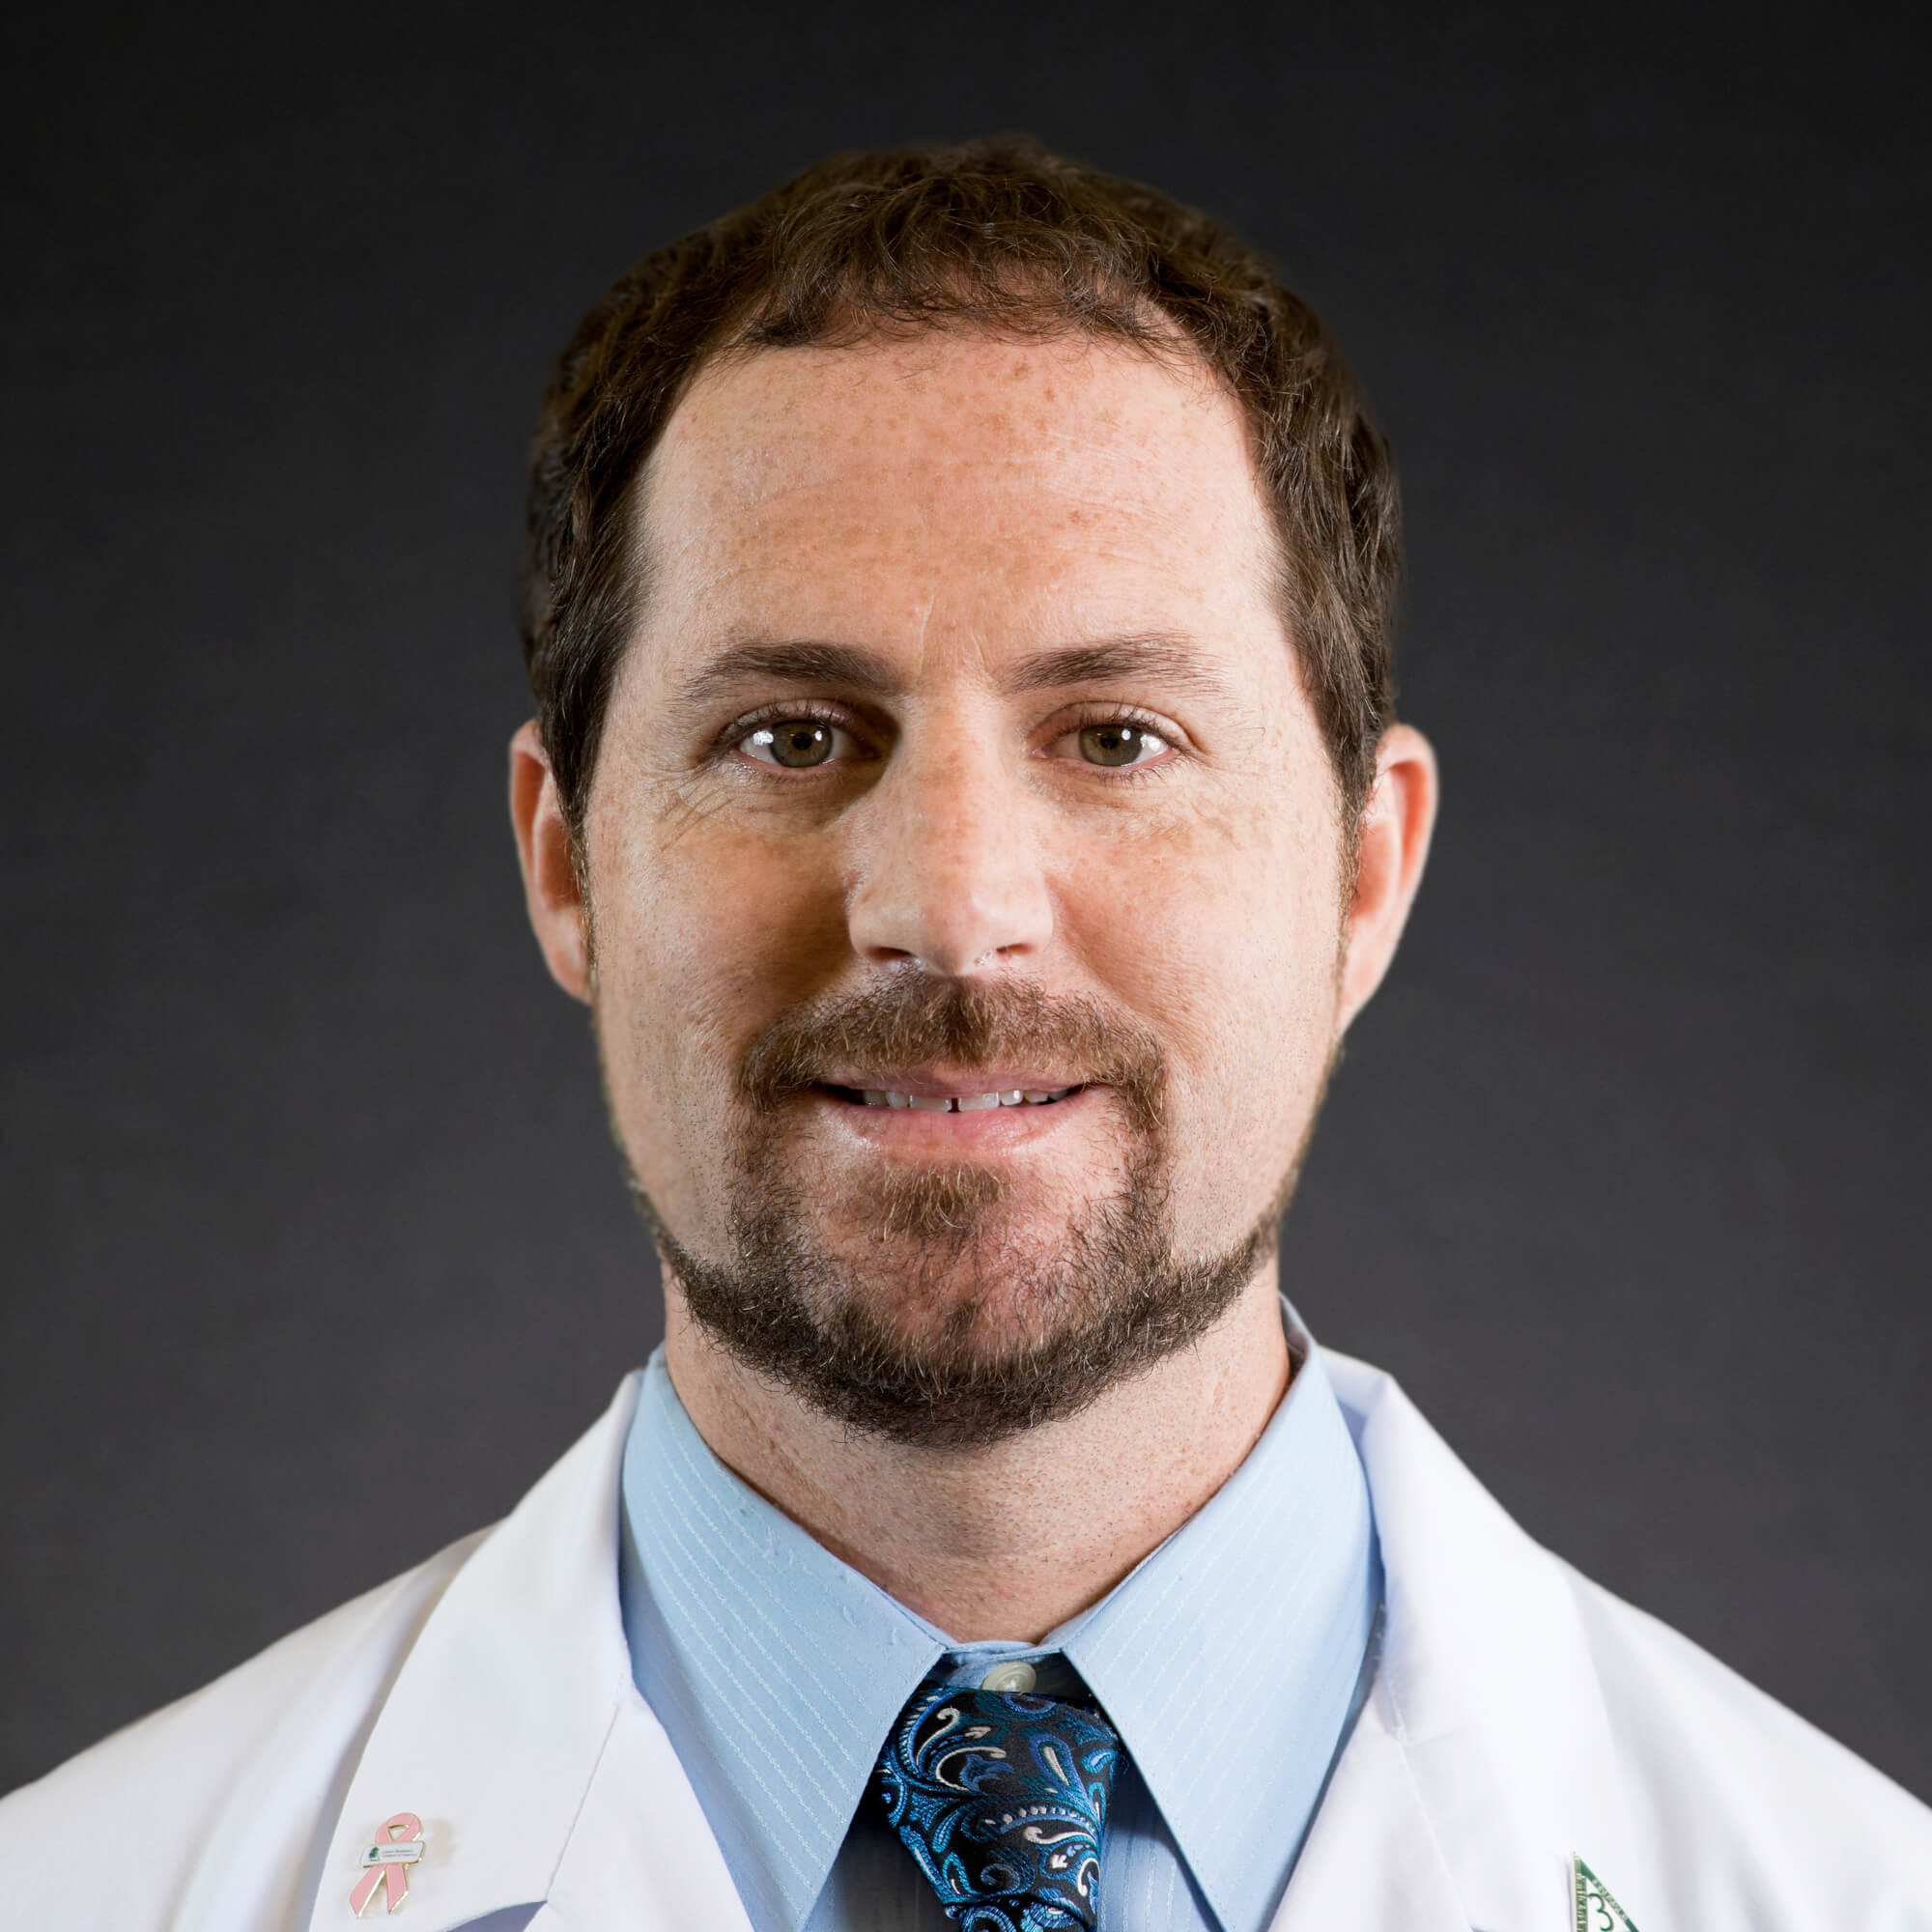 Daniel Kellman - Director of Naturopathic Medicine and Rehabilitation Services